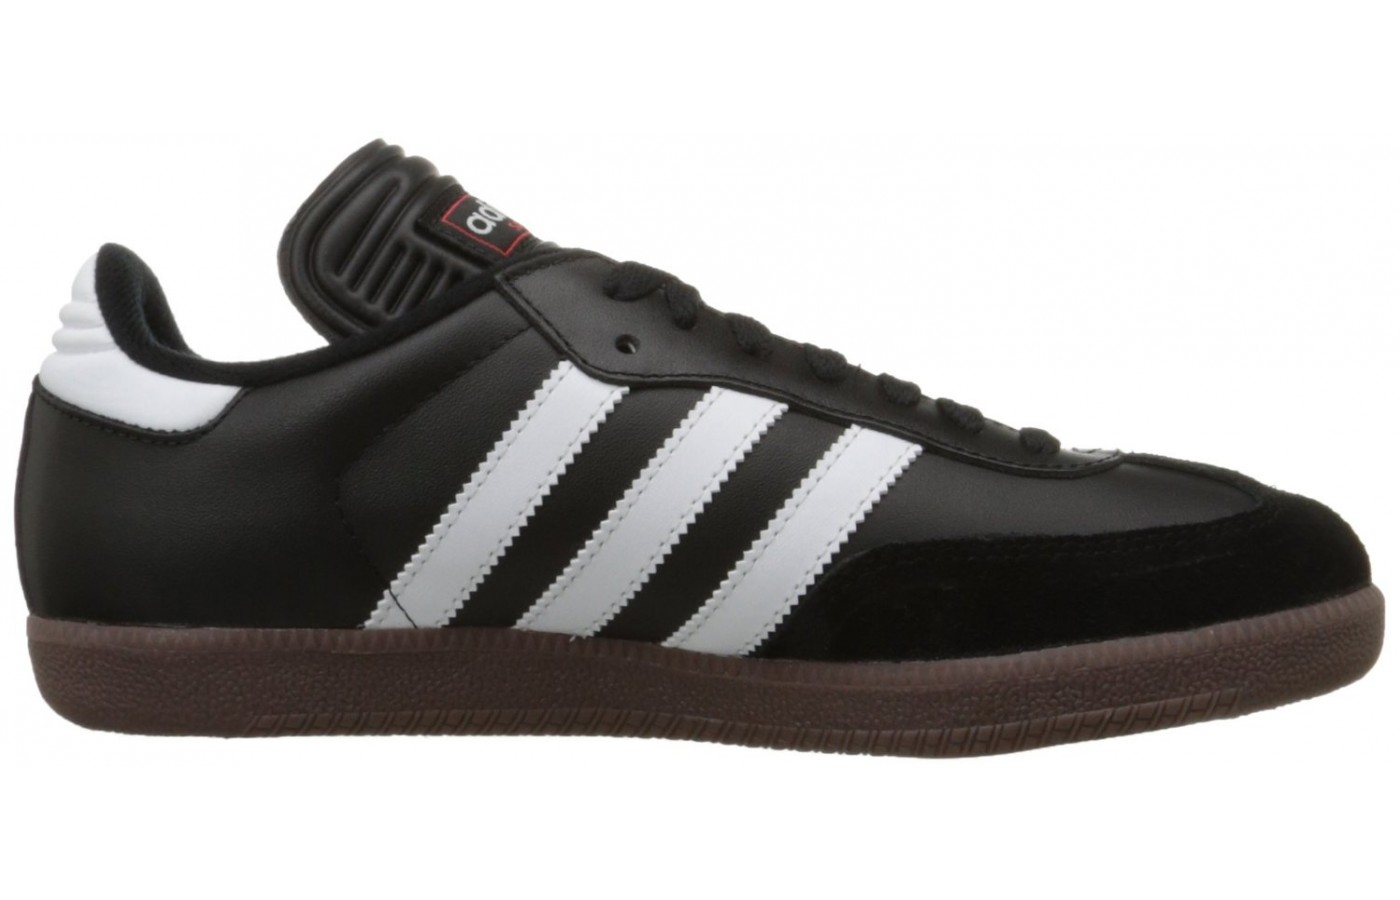 3ea3af882 Adidas Samba Reviewed for Performance in 2019